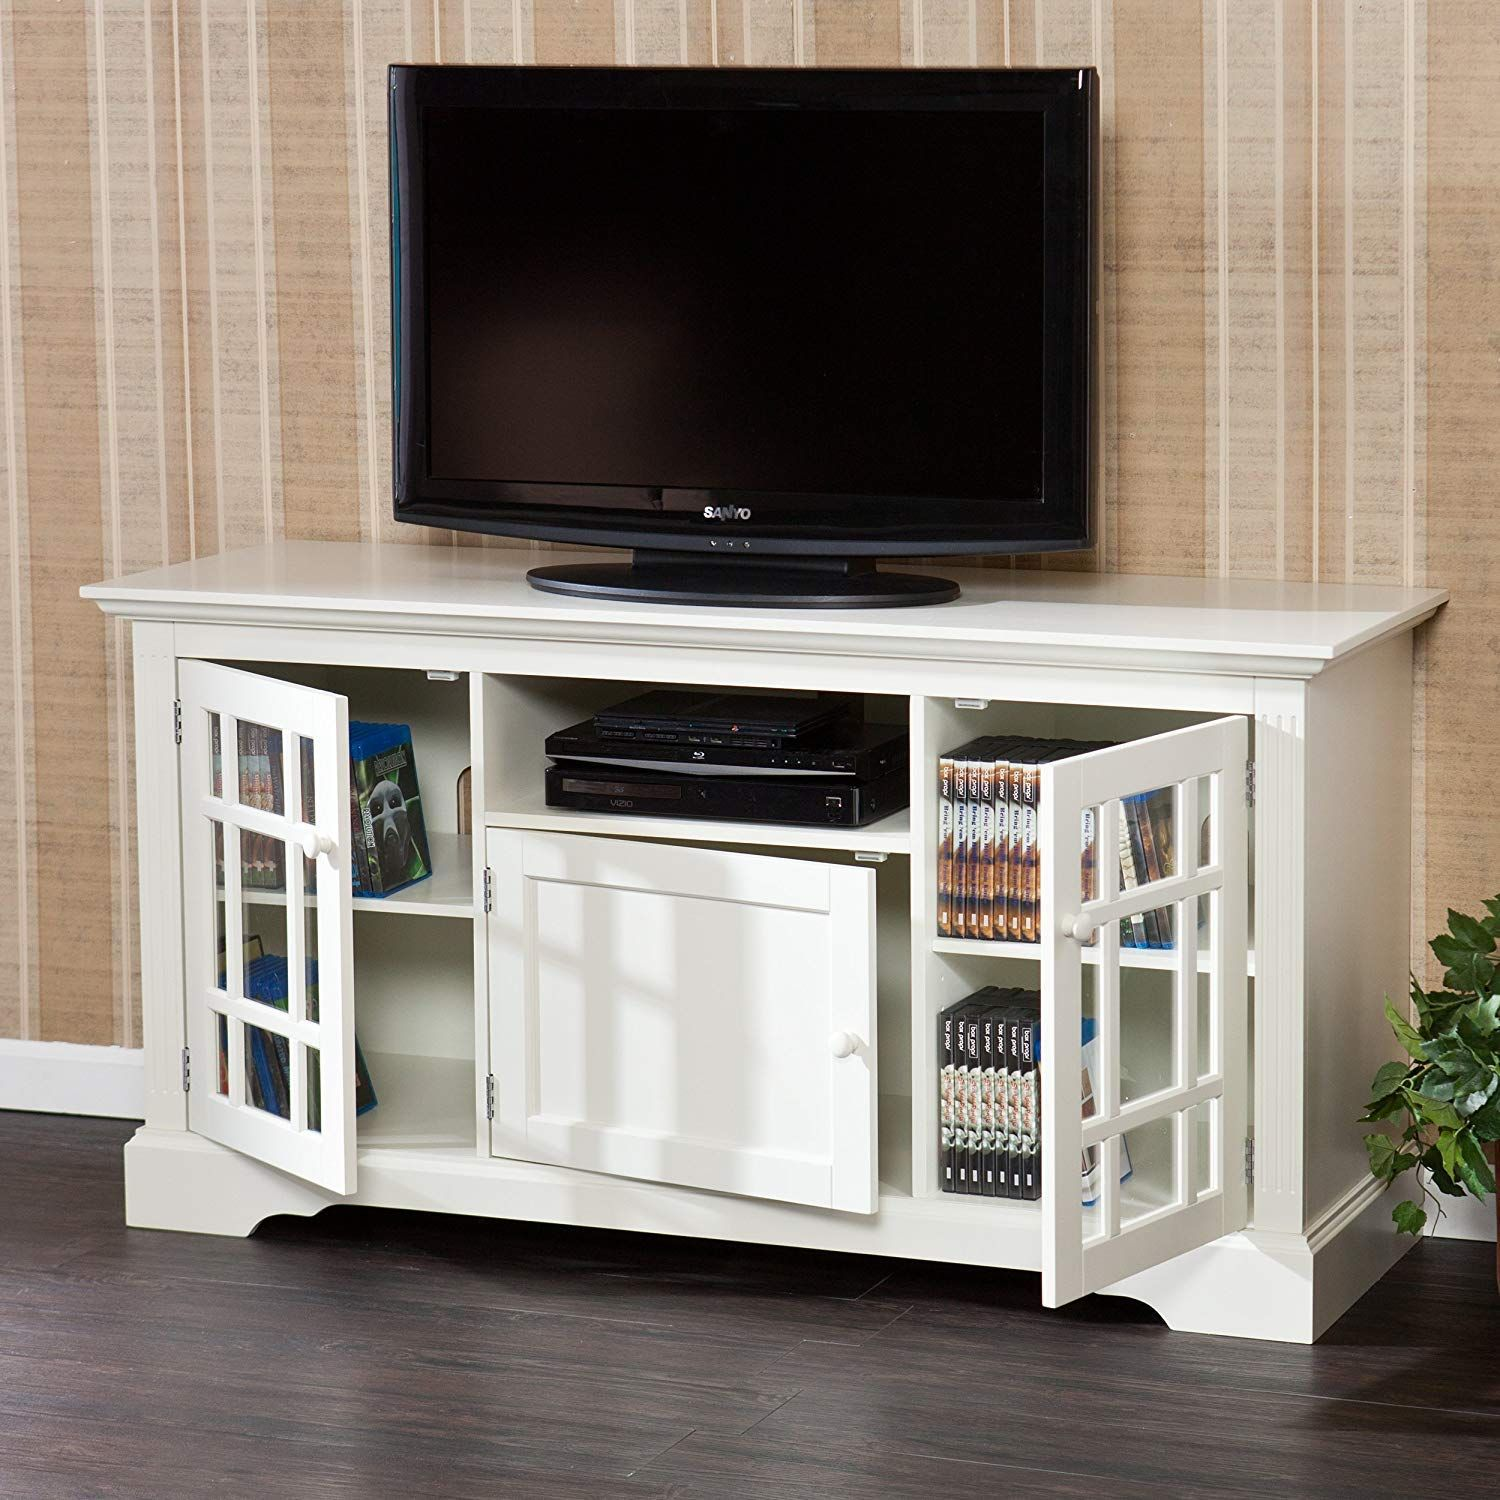 Coastal TV Stands & Beach TV Stands White tv stands